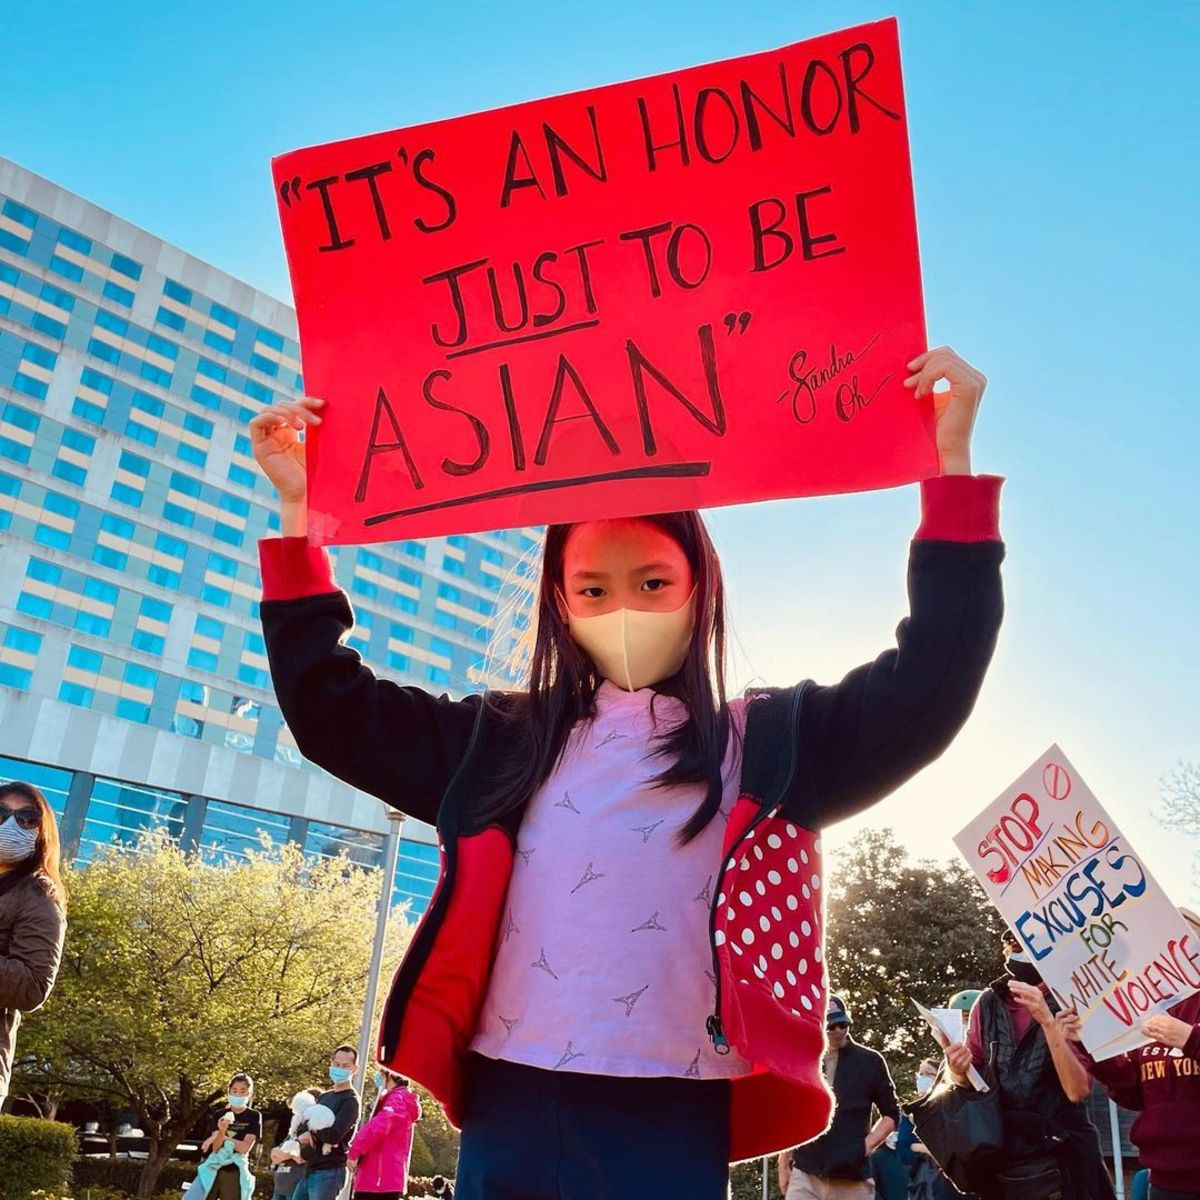 Photo of Jenny Wang's daughter, reposted here with her permission. Follow Jenny at @asiansformentalhealth.